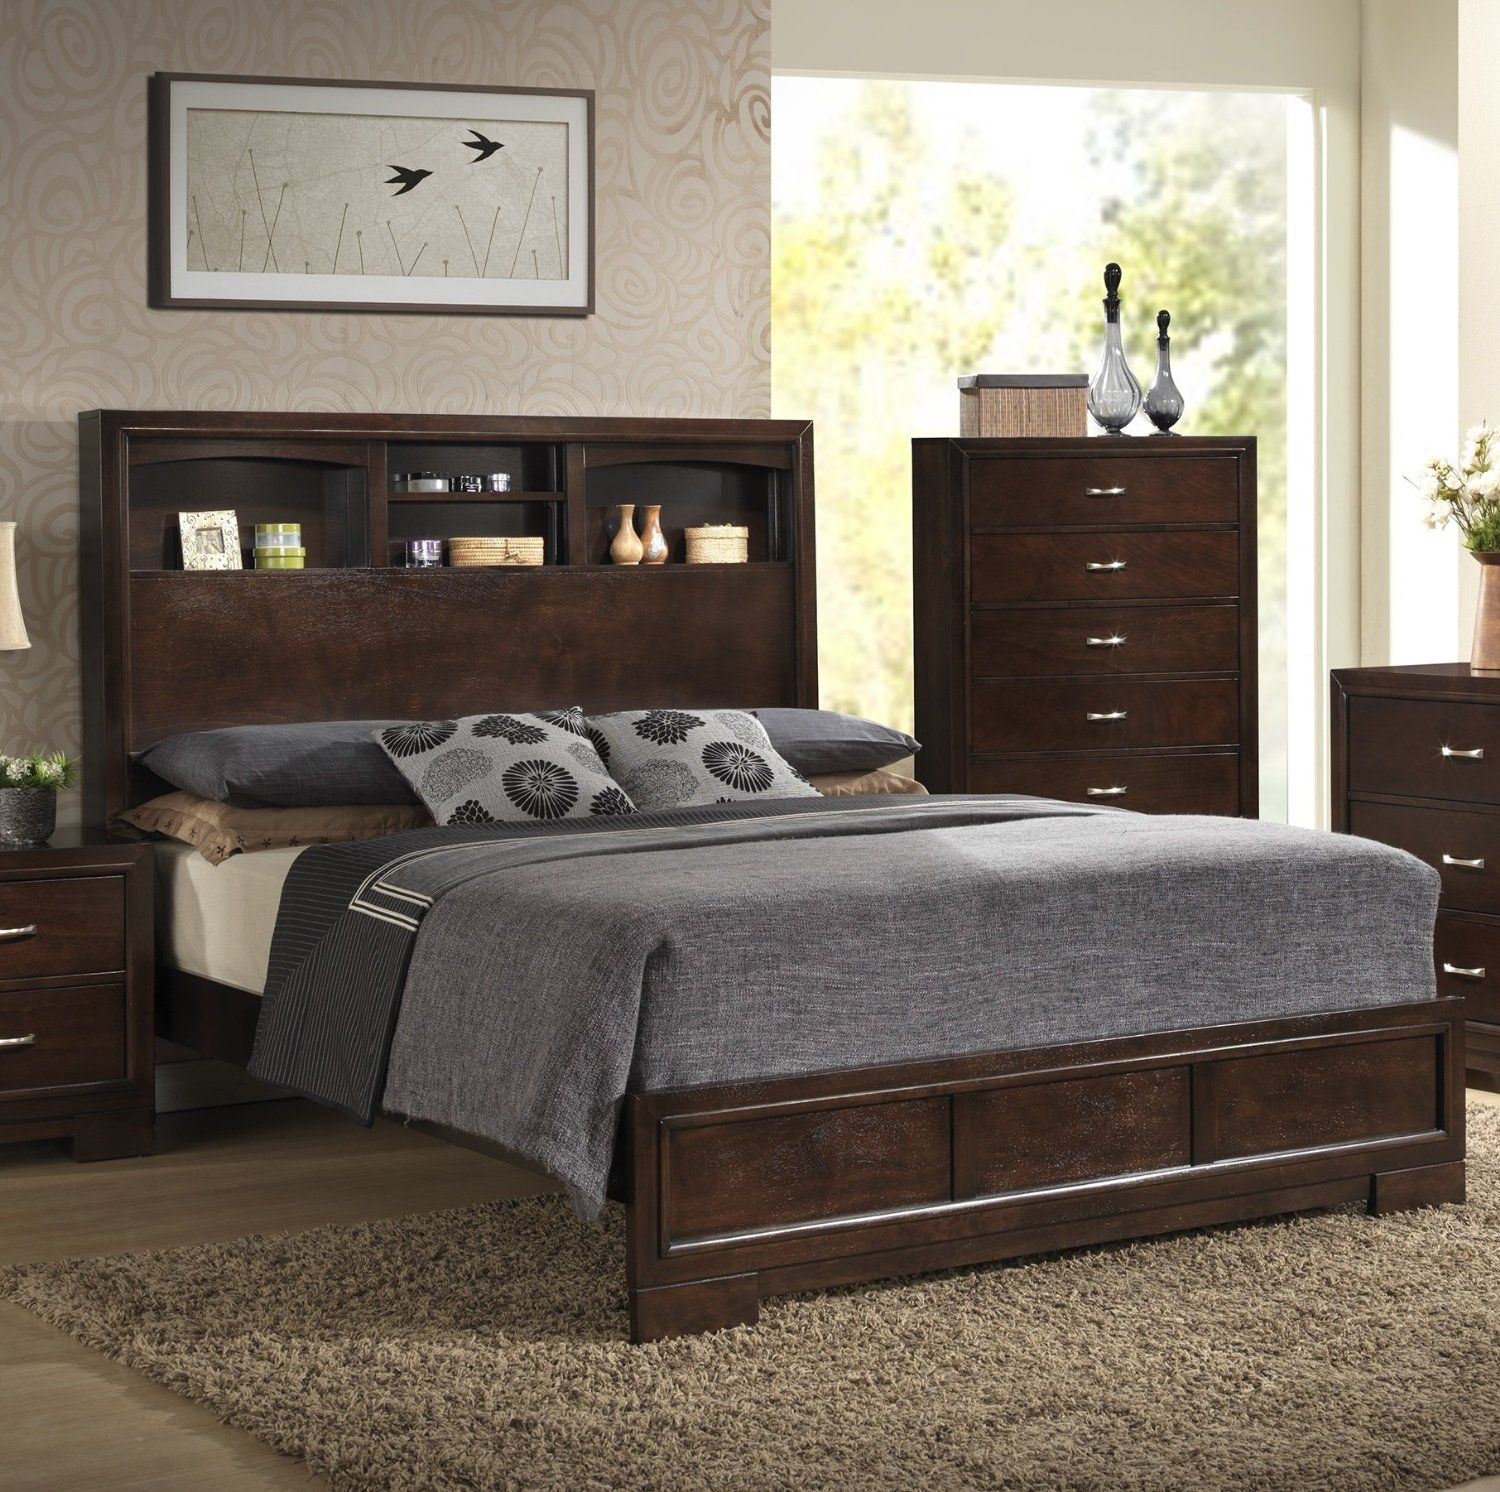 Sleigh Bed - King, Queen, Twin, Upholstered | Pinterest